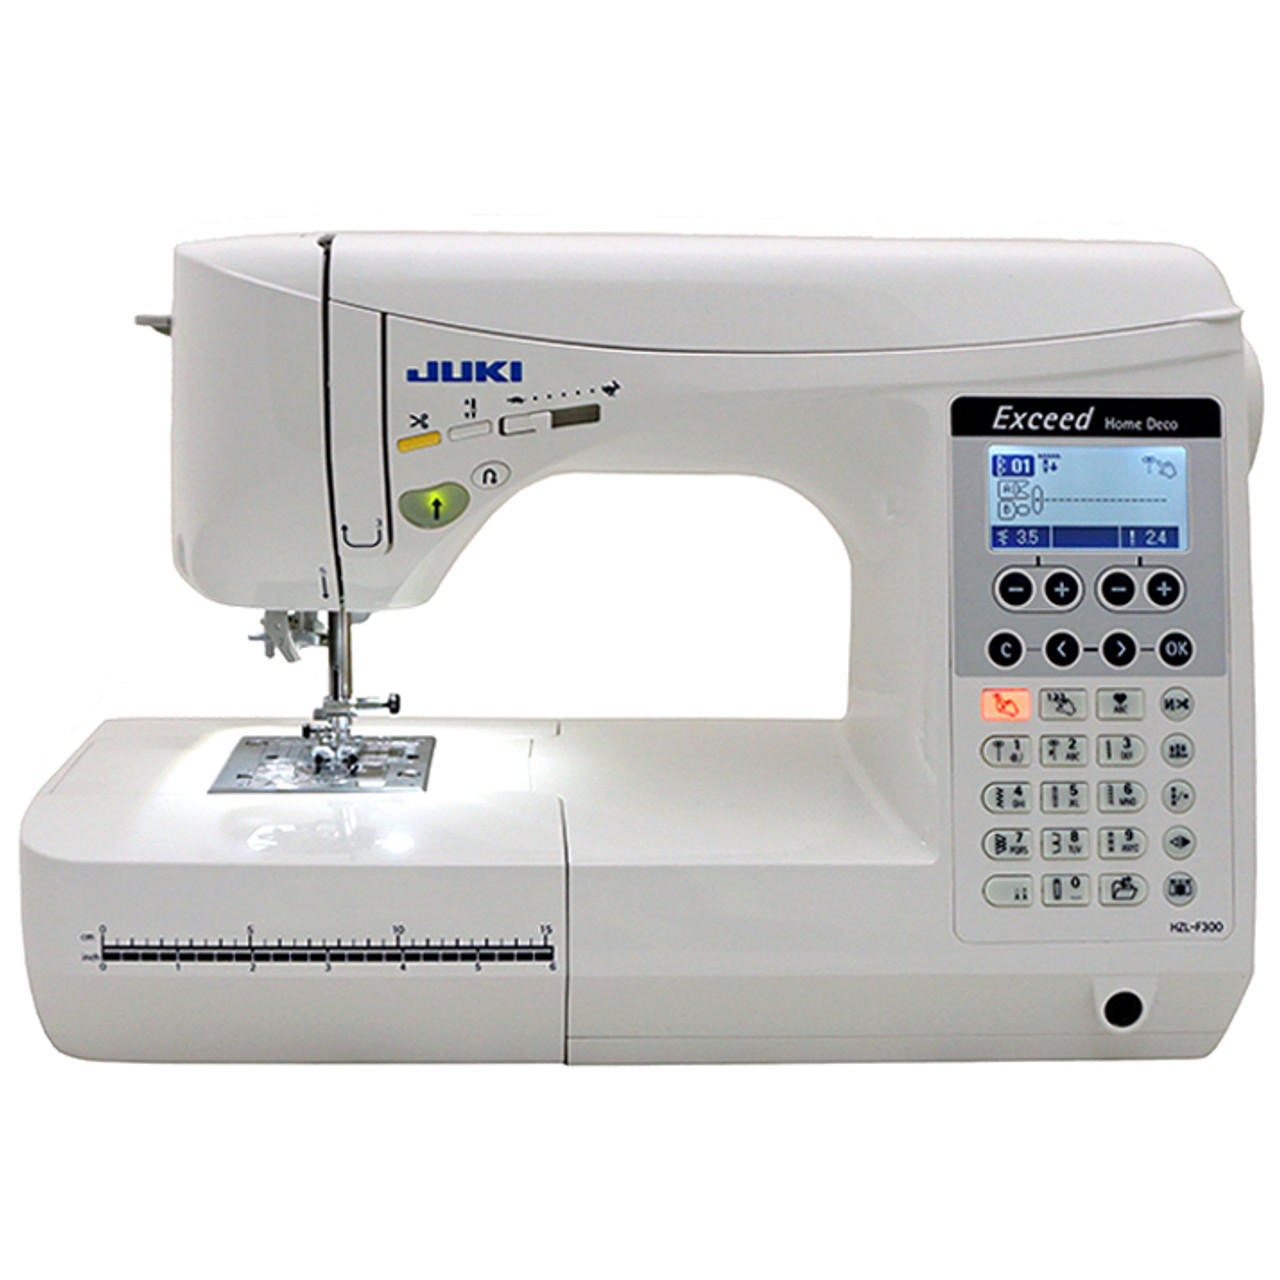 Juki Exceed HZL F40 Home Deco Computerized Sewing Machine 4040 Extraordinary Computerized Sewing Machine